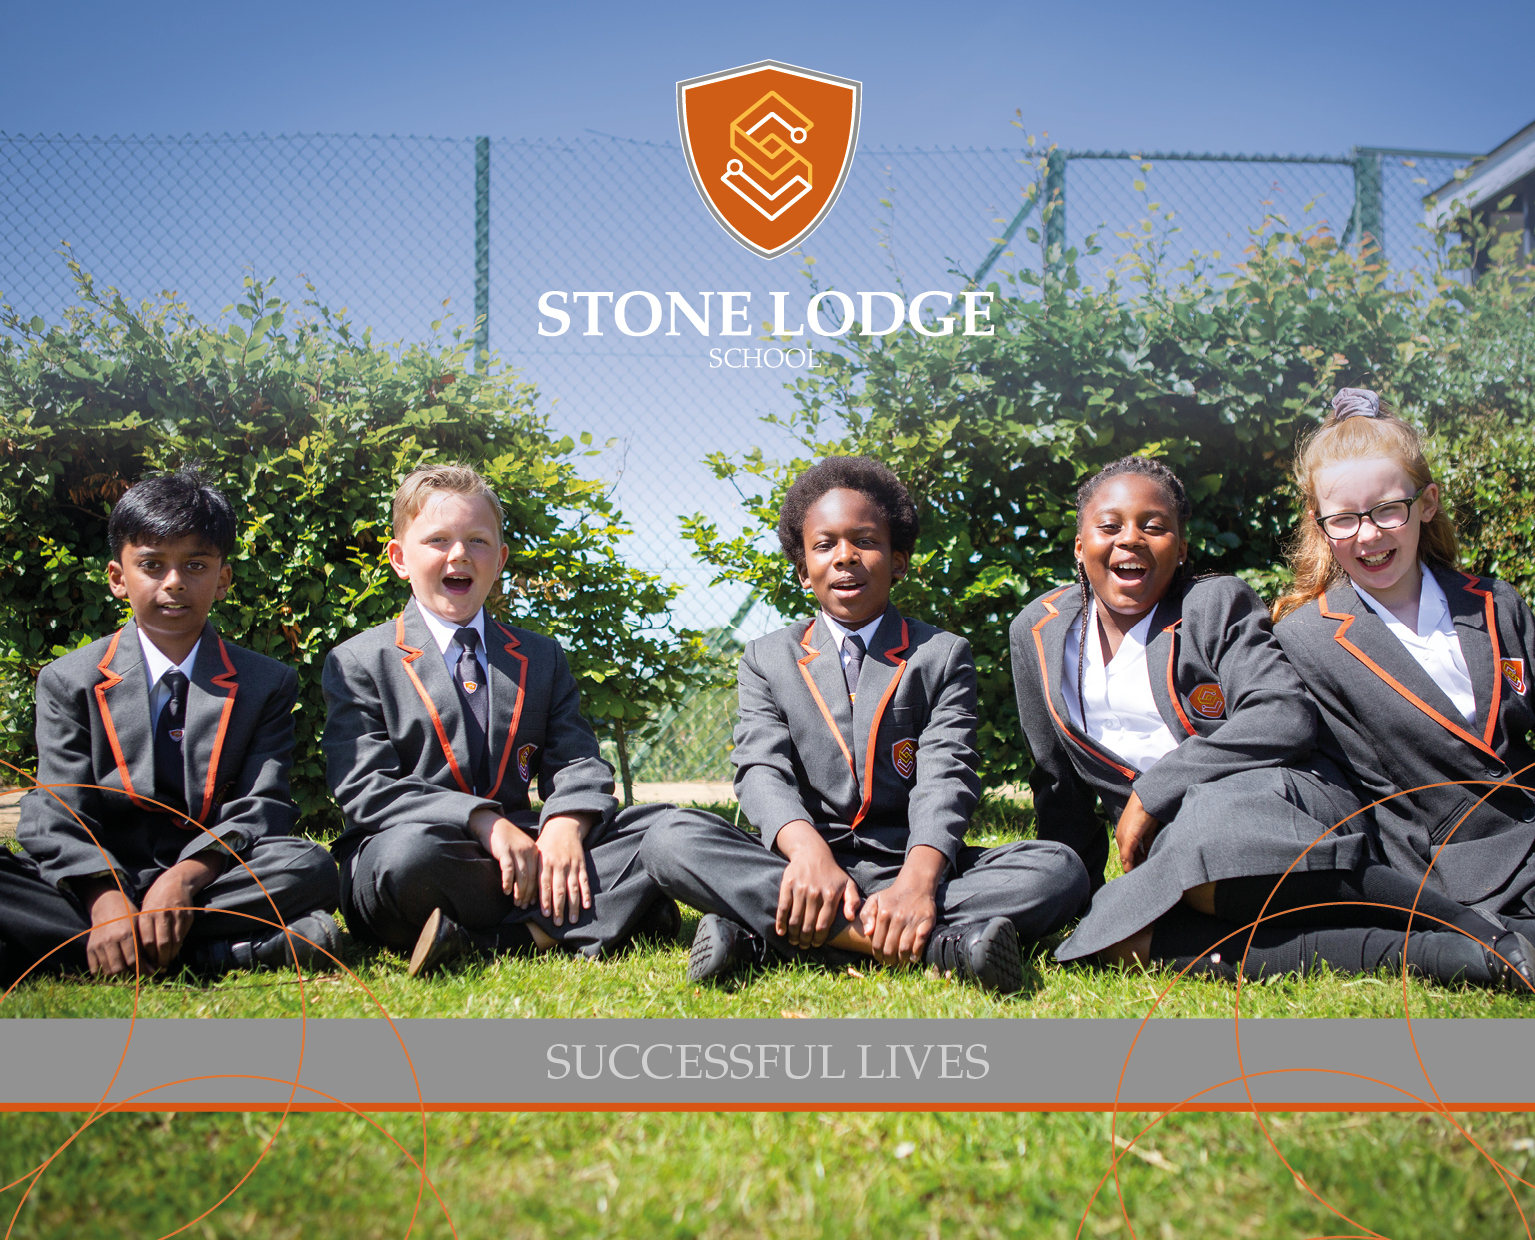 Stone lodge prospectus front cover